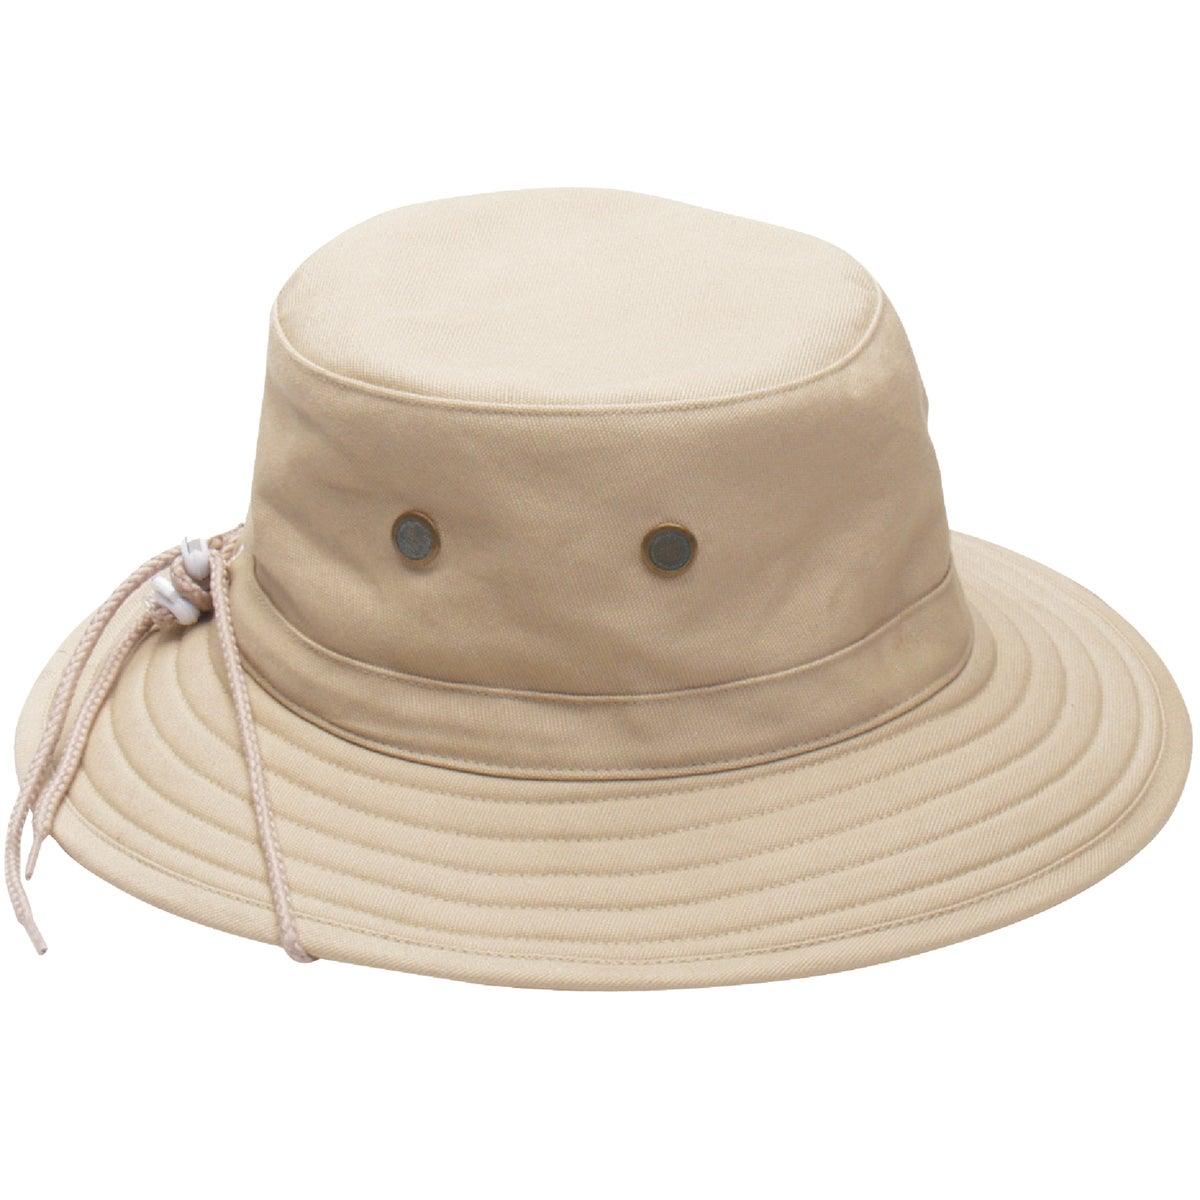 WMNS STONE COTTON HAT